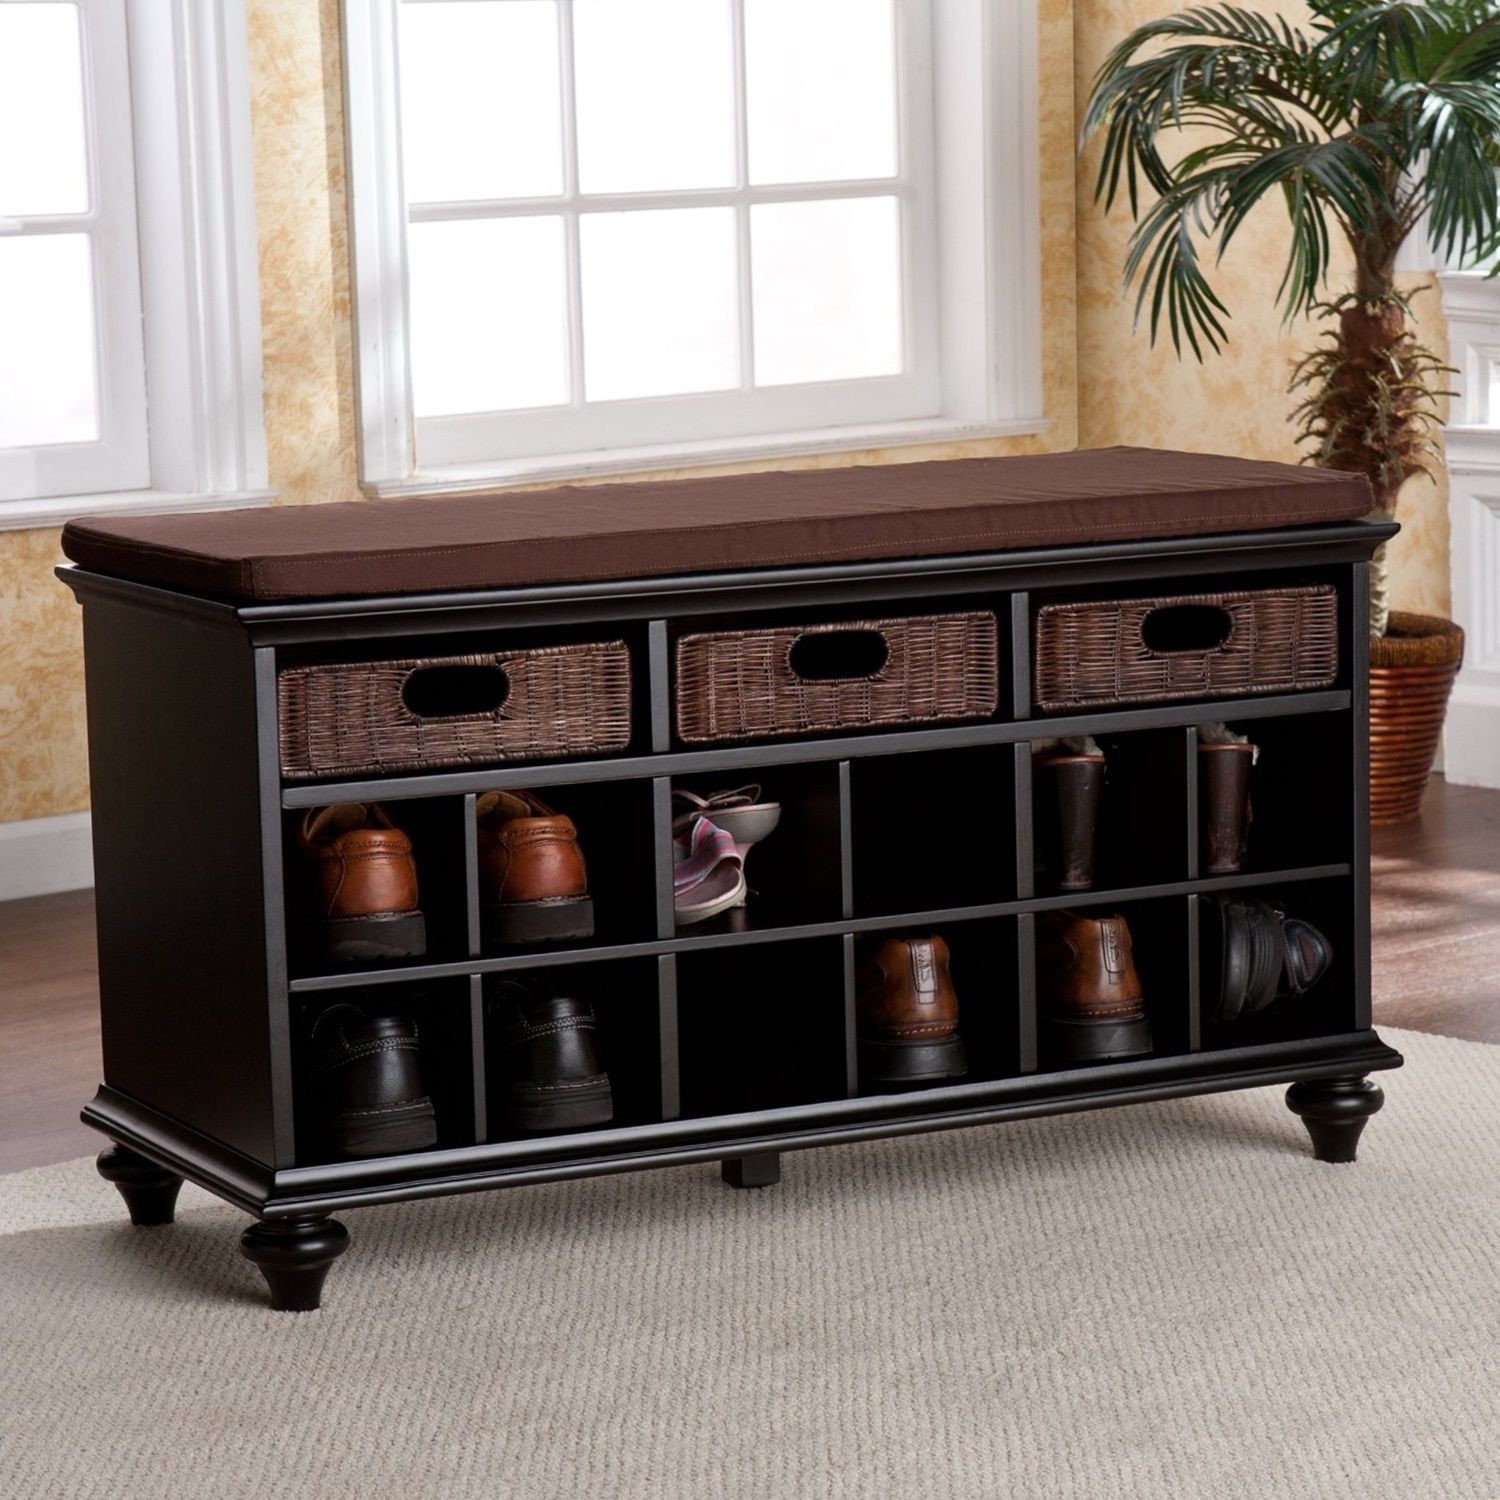 Shoe Storage Bench Rattan Drawers Entryway Corridor Hallway Hall Vestibule Foyer Shoe Organizers